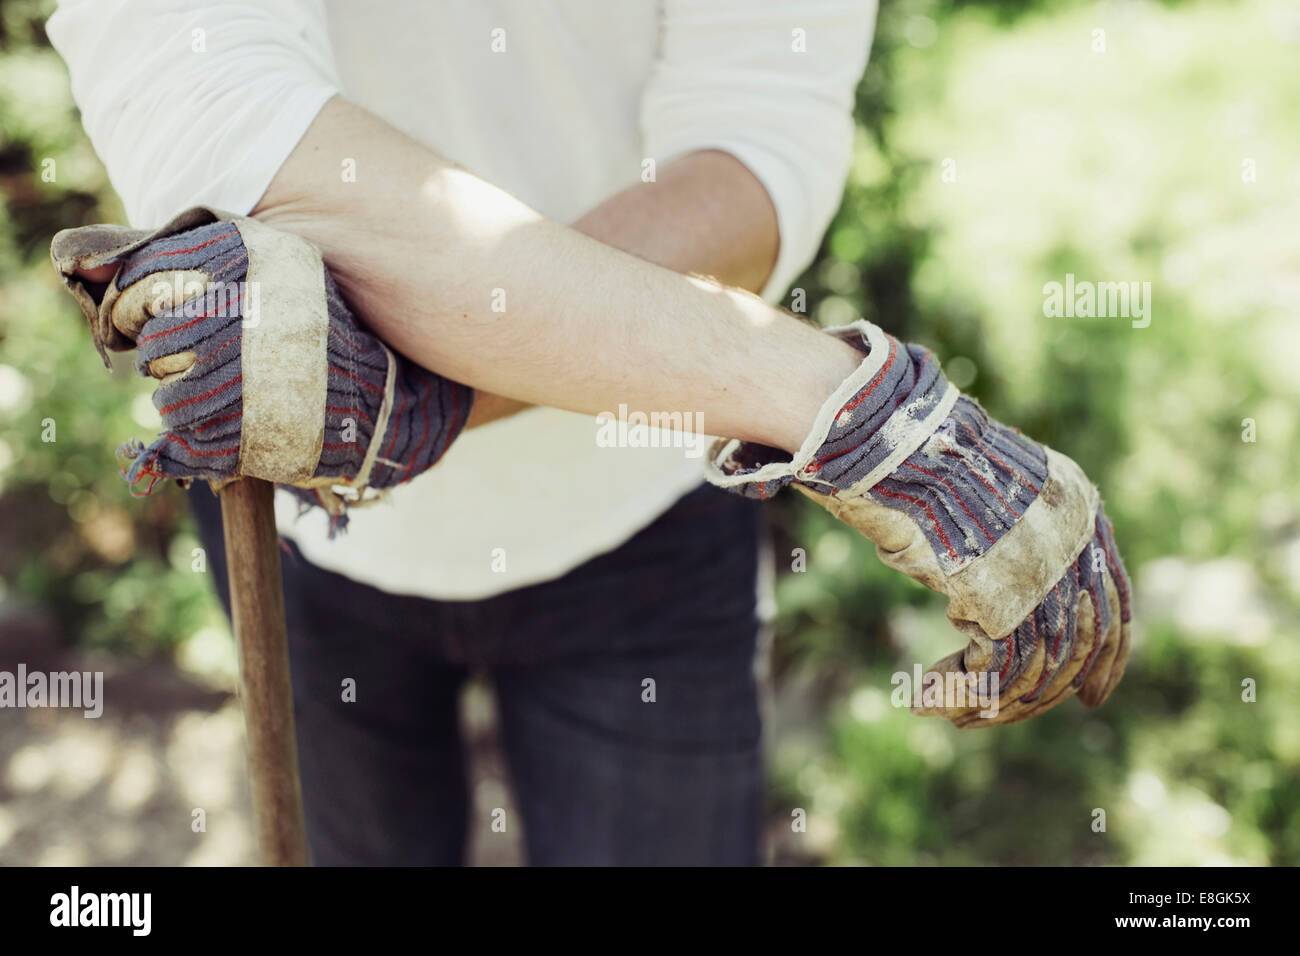 Midsection of man wearing gardening gloves at yard - Stock Image